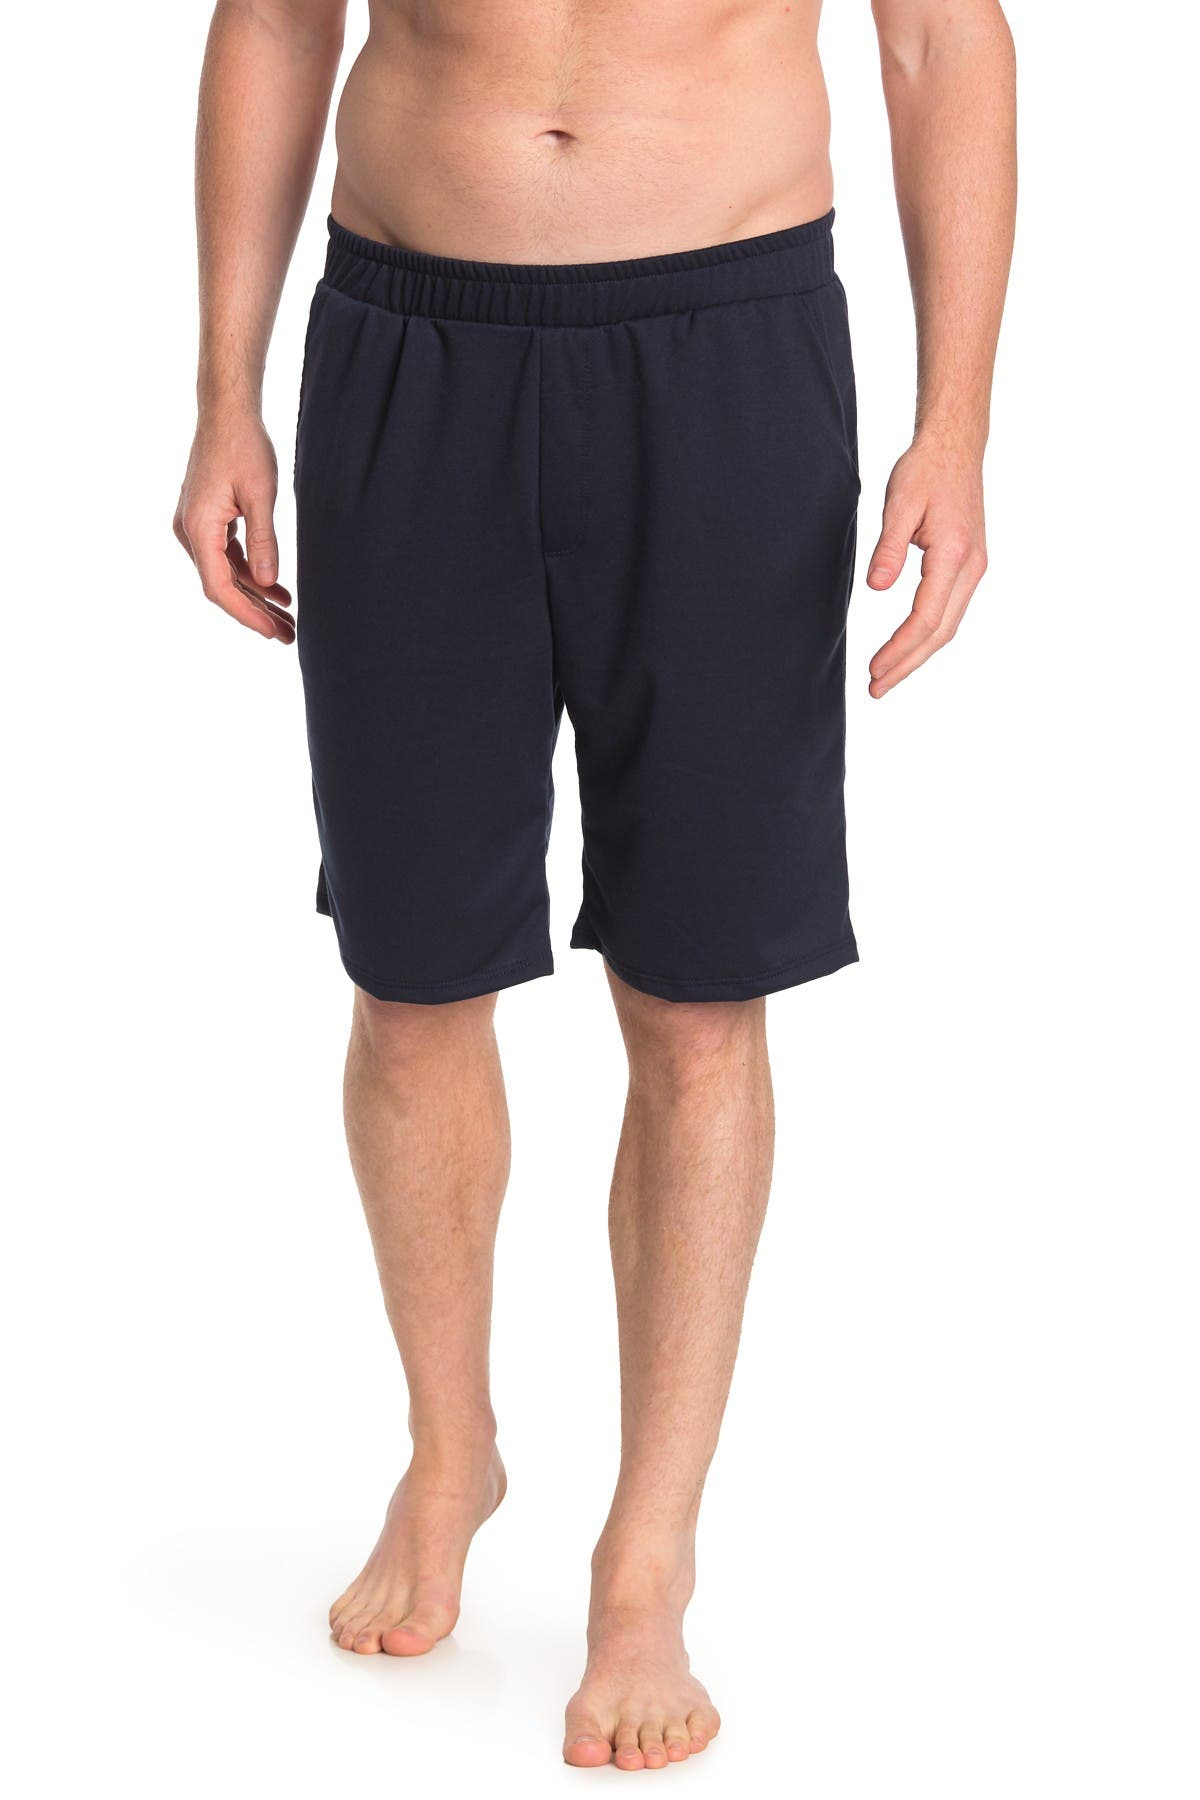 Image of COZY ROZY Baja Man Solid Pull-On Shorts